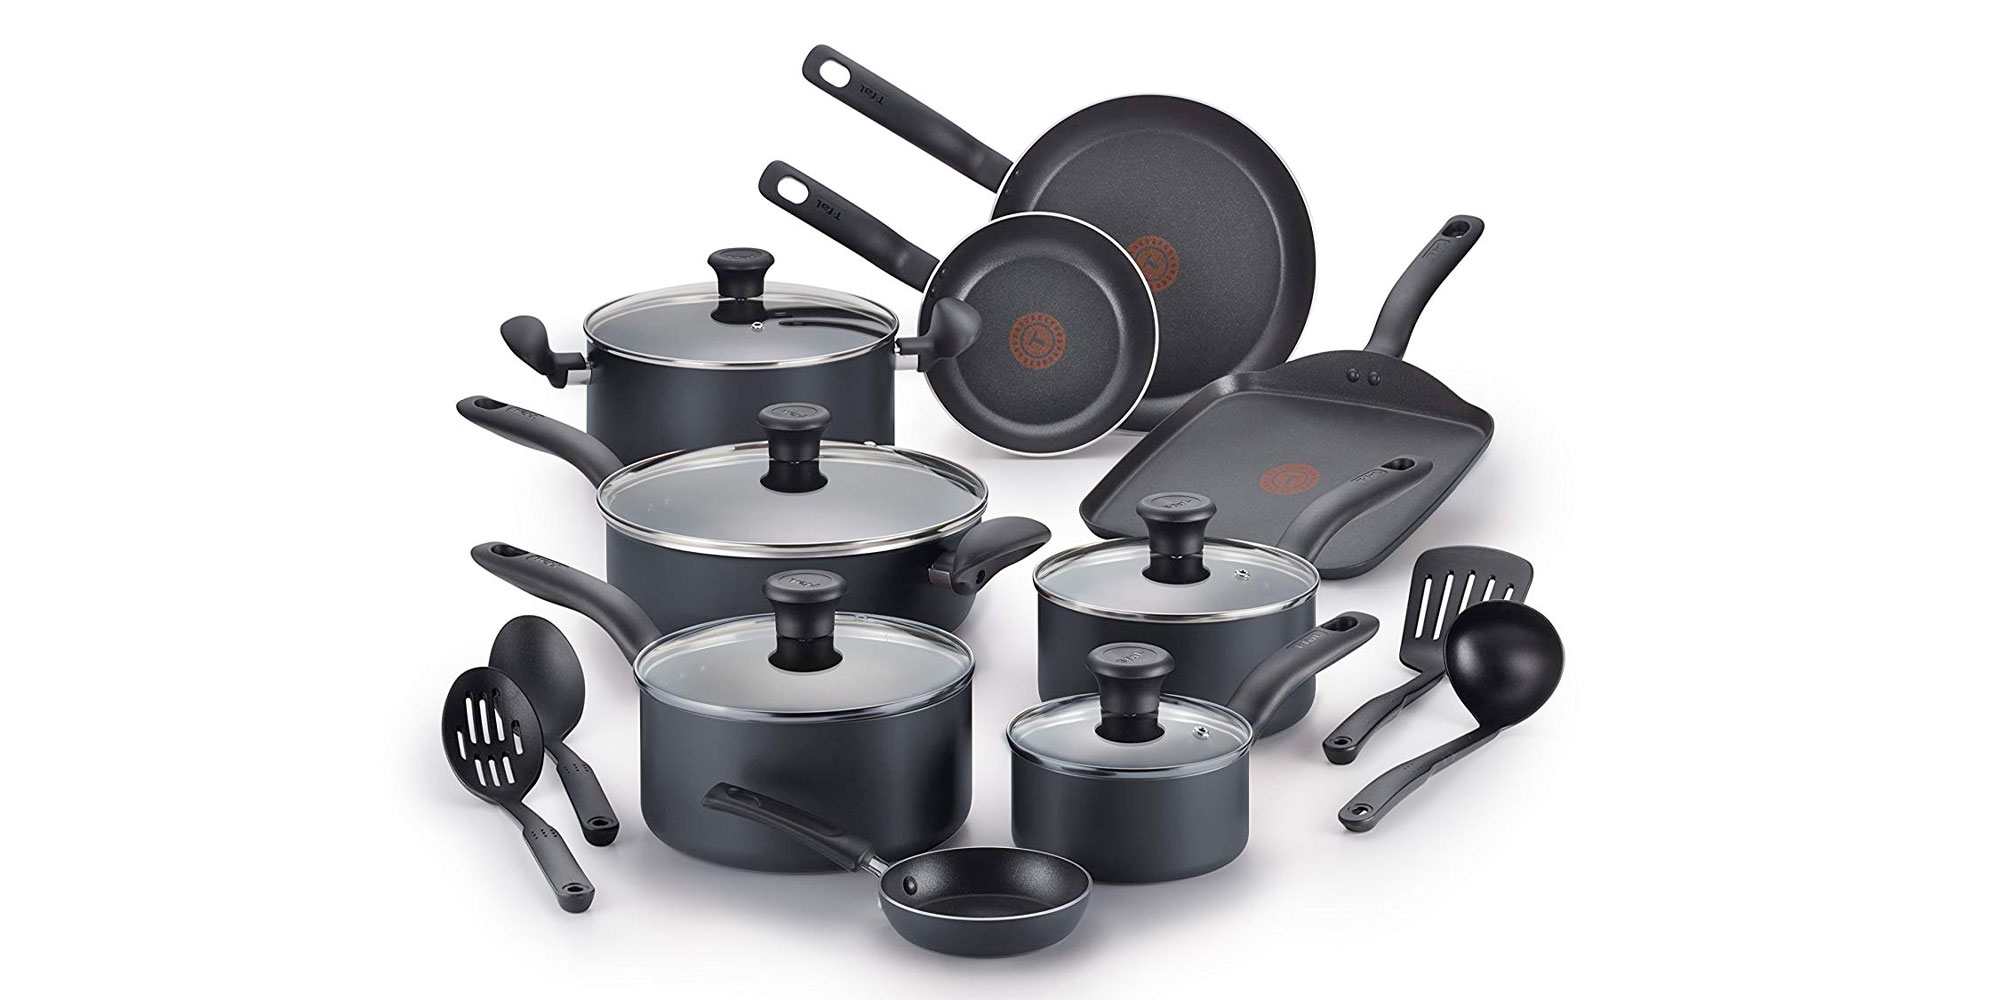 Start or expand your kitchen w/ T-Fal's #1 new-release 18-piece cookware set: $59.50 (Reg. $80+)